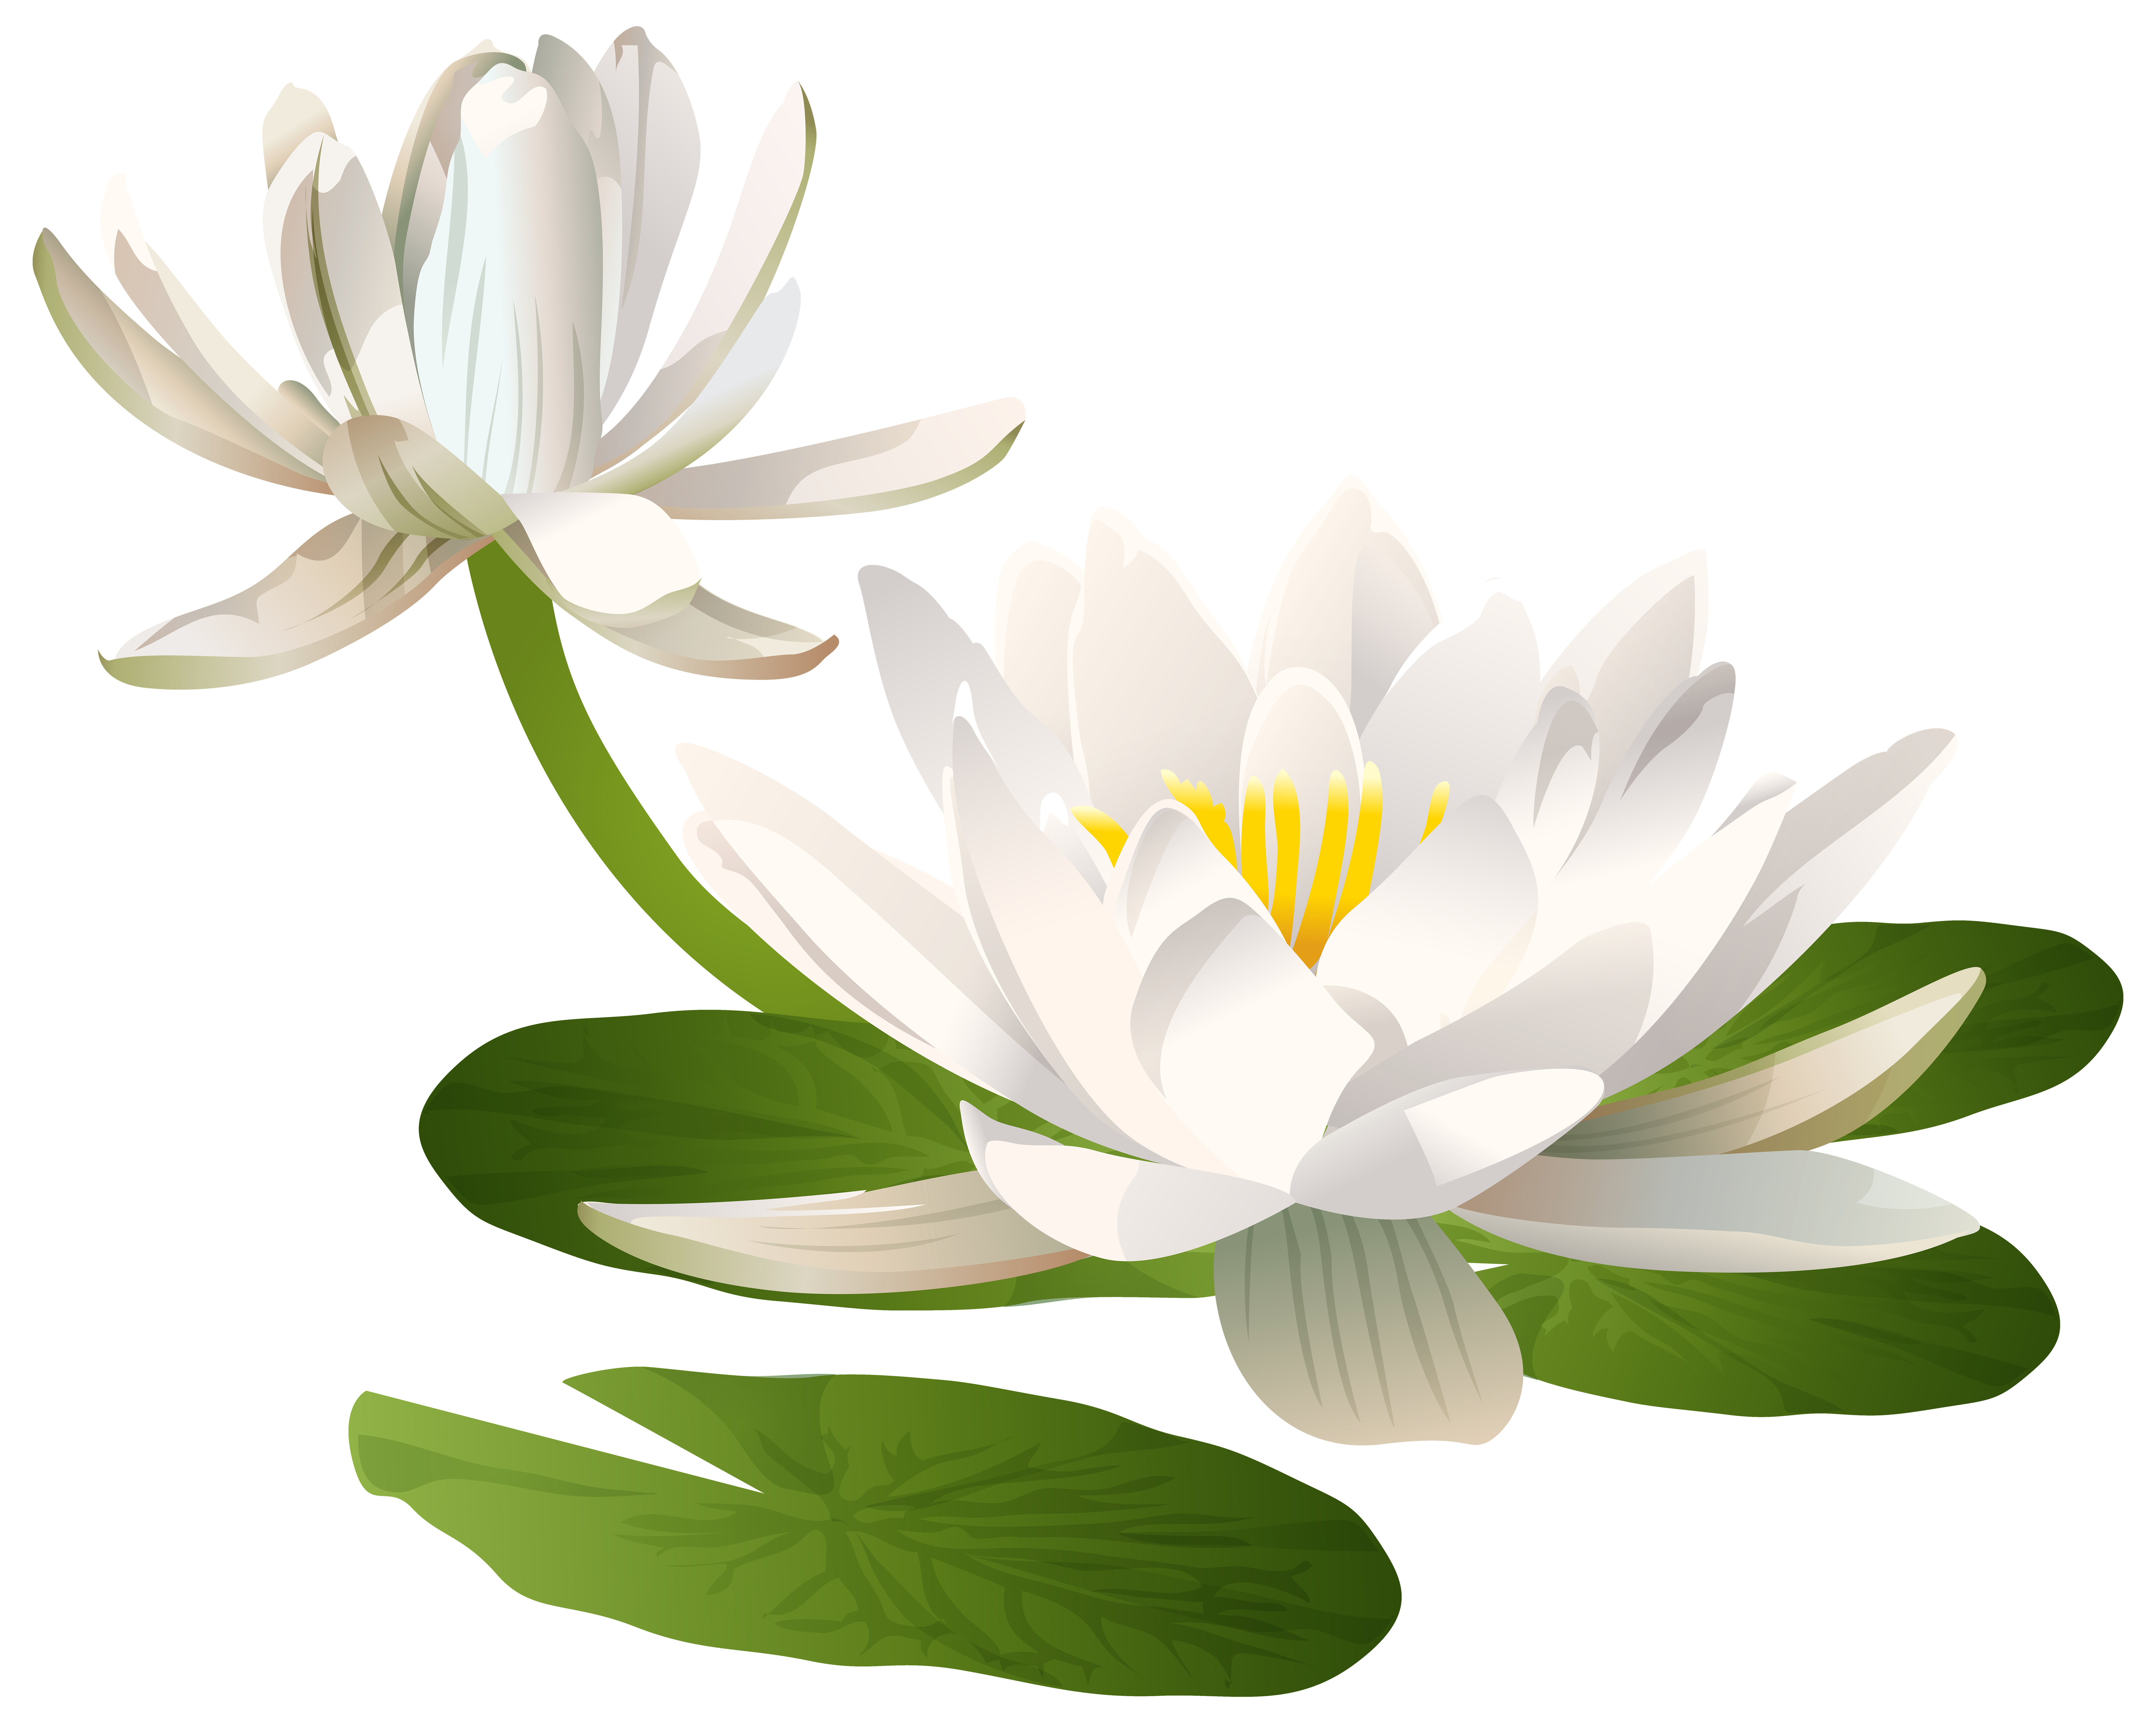 Water Lily PNG Clip Art Image.